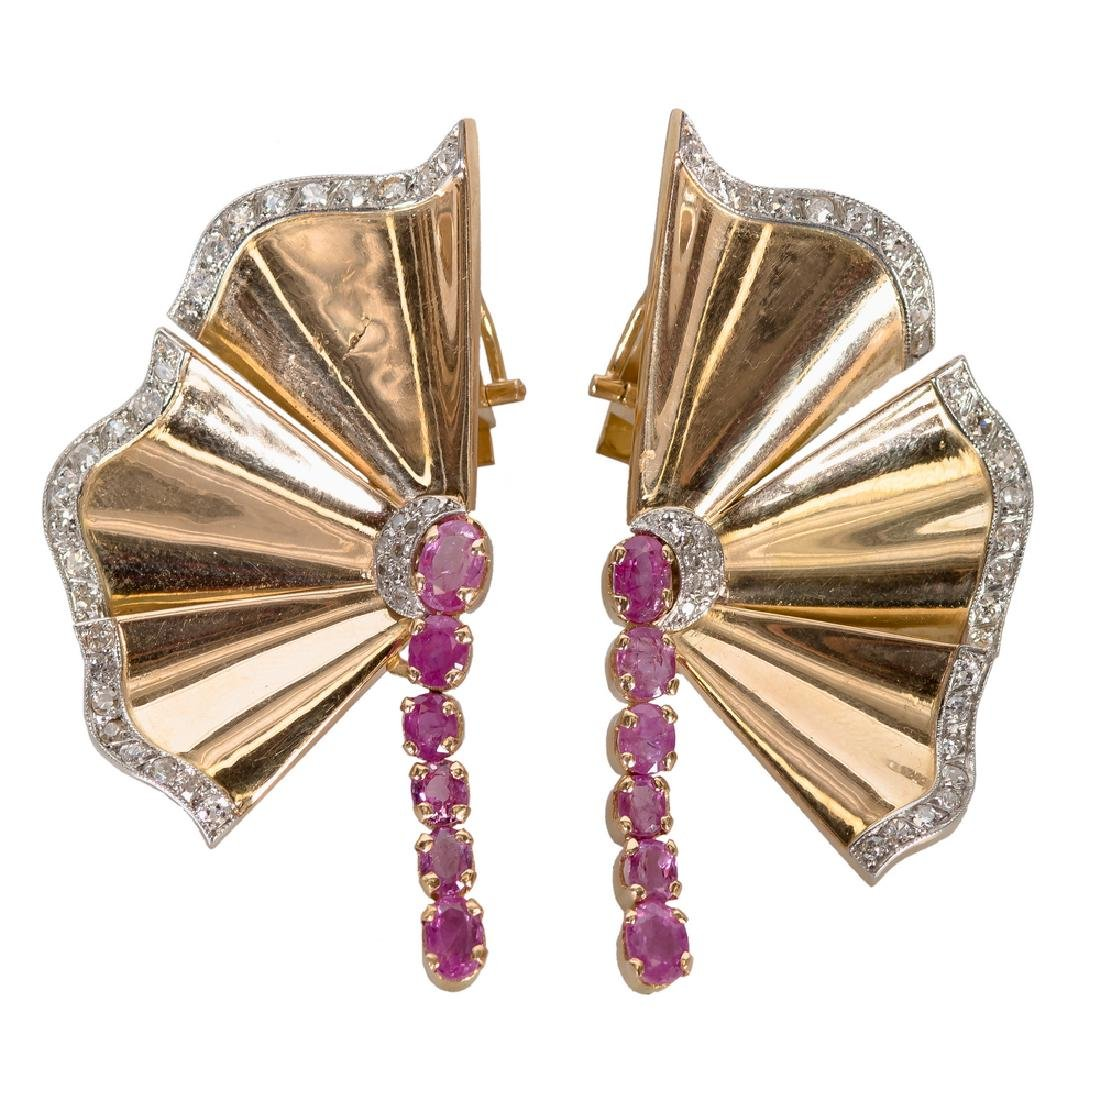 PAIR OF 18 KARAT ROSE GOLD, DIAMOND, & RUBY FAN